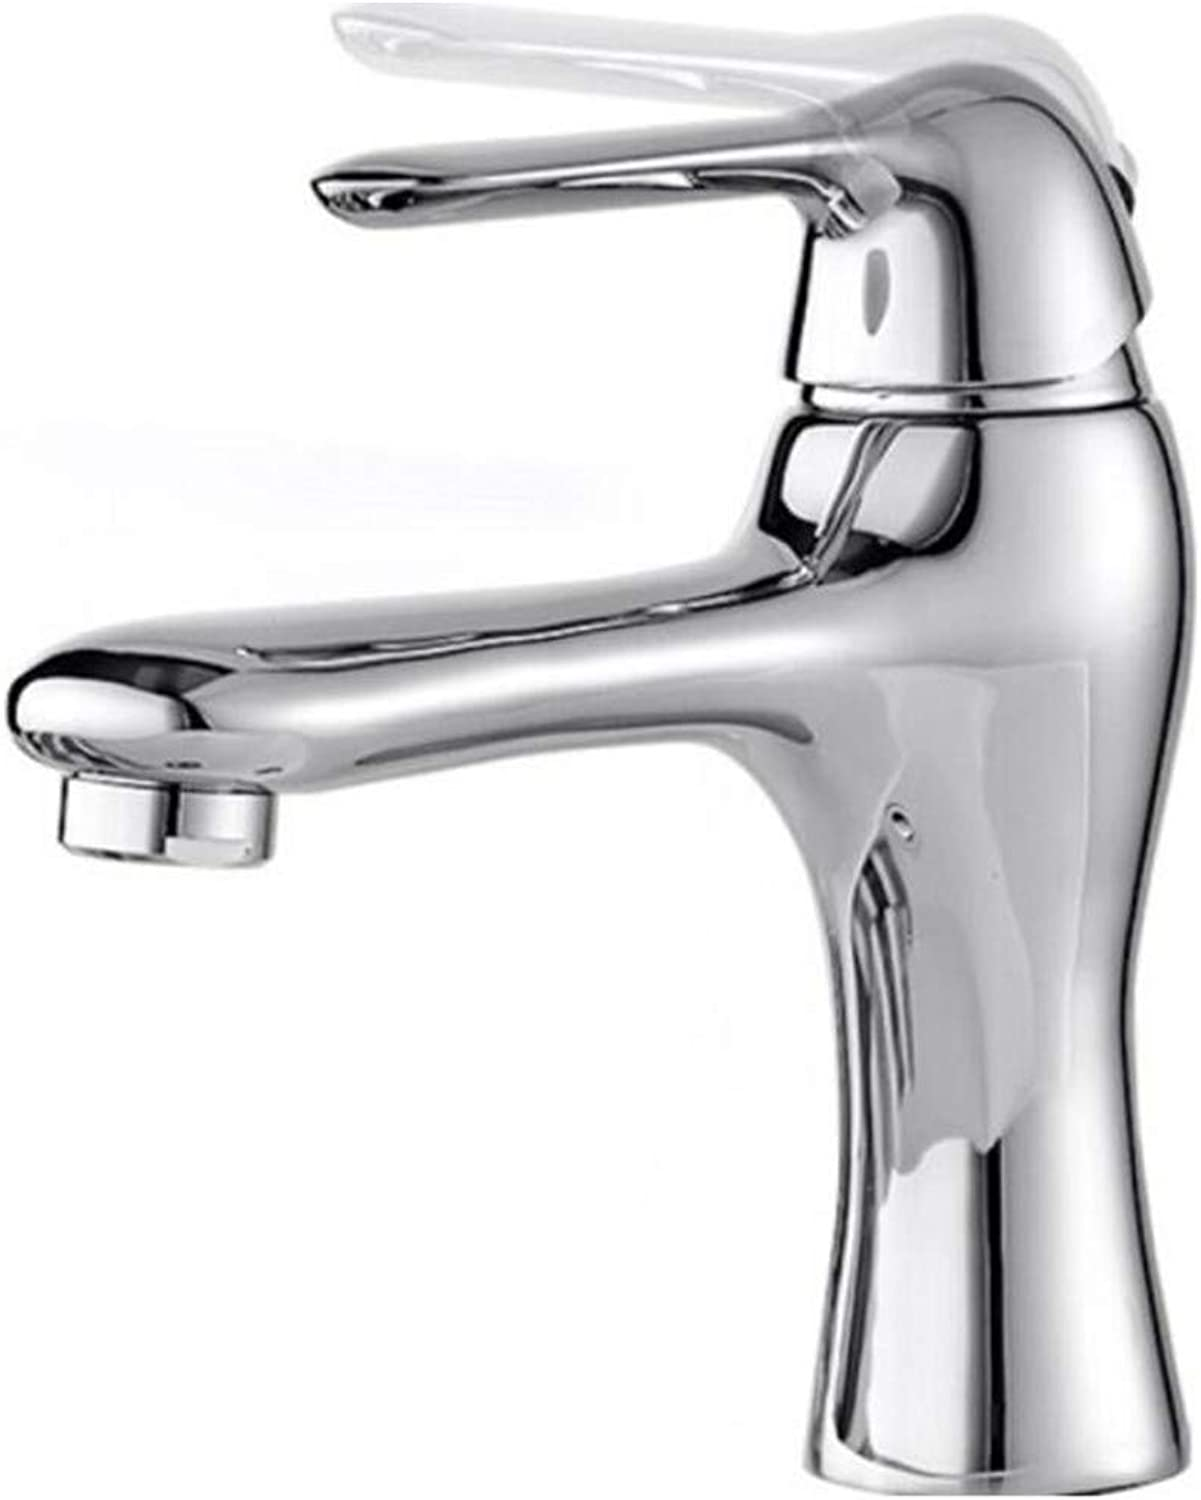 Faucet Waste Mono Spoutface Basin Faucet Copper Hot and Cold Water Washbasin Sink Nozzle Washbasin